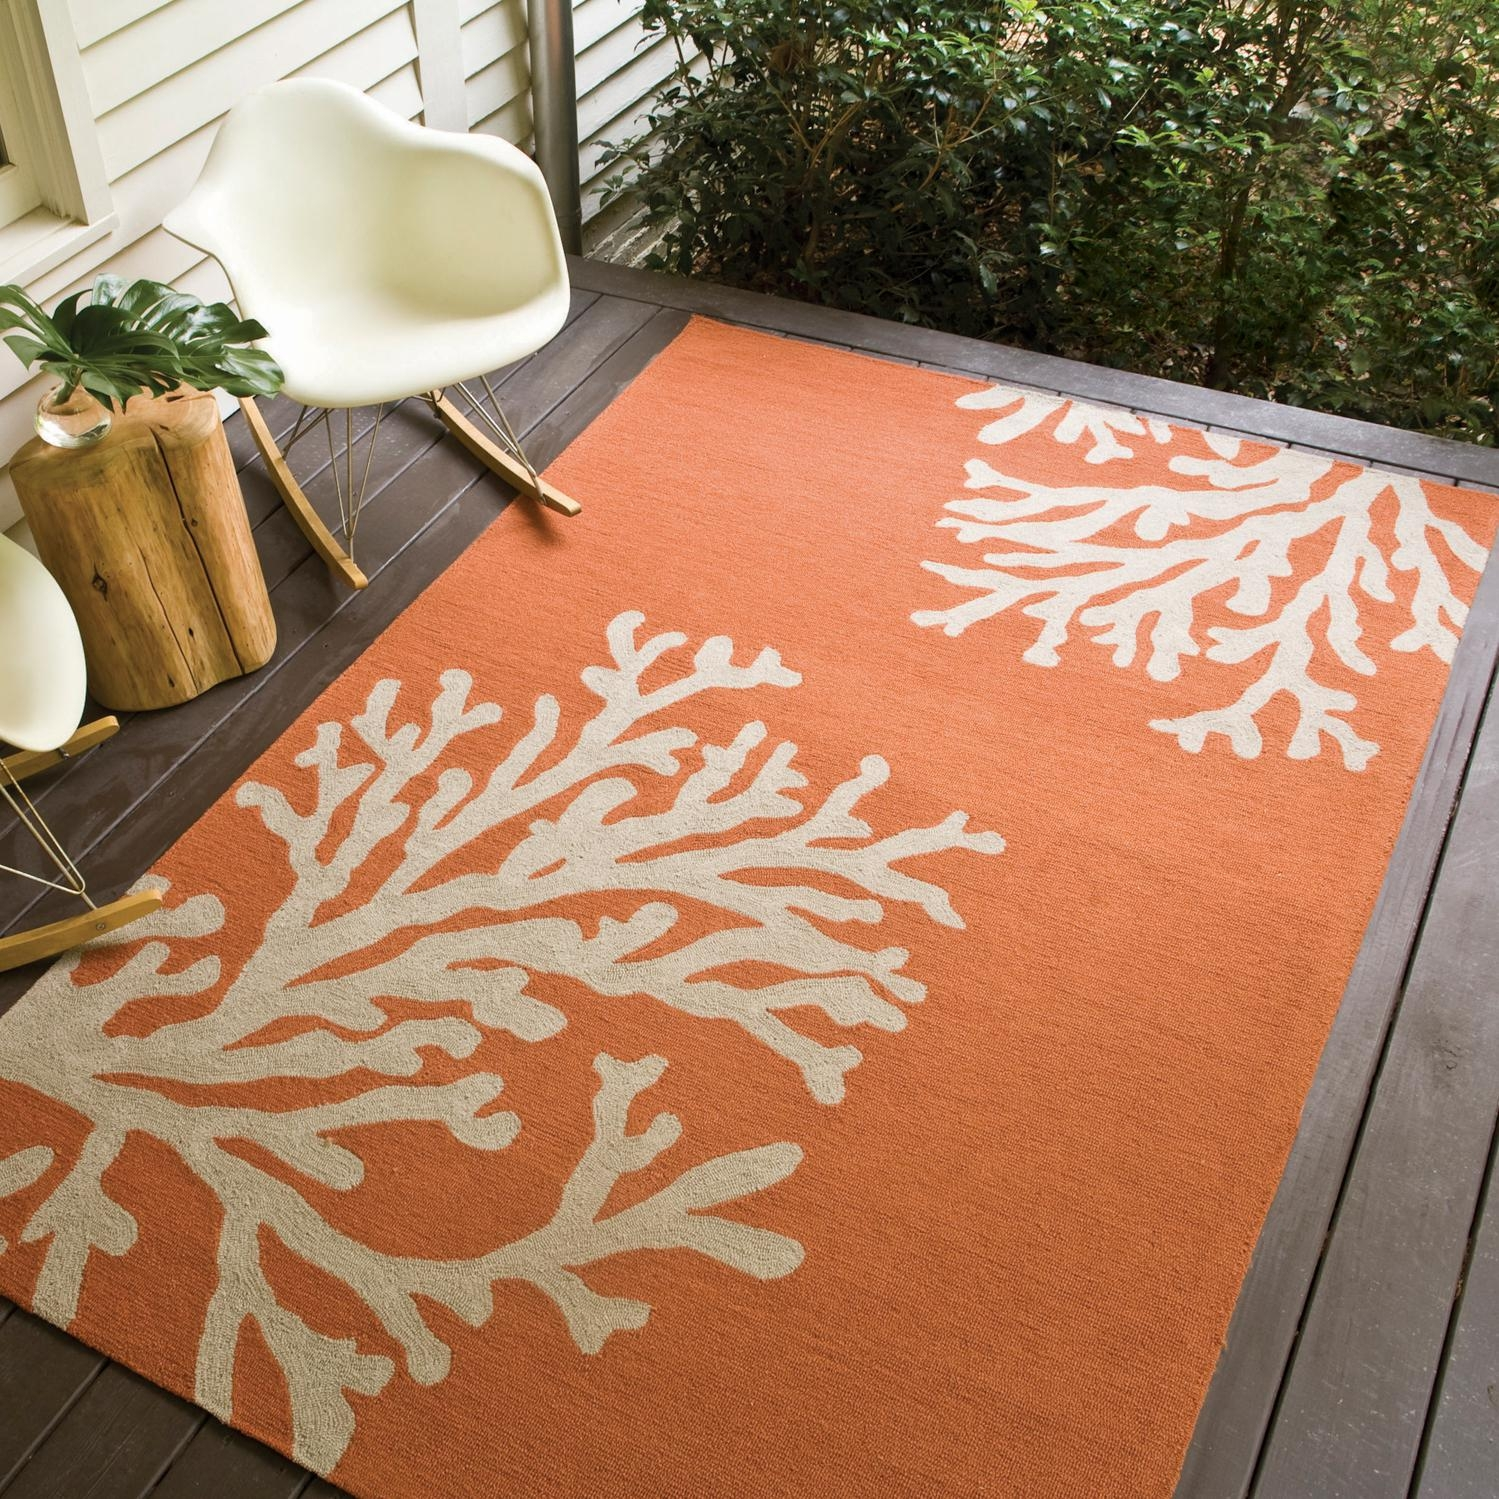 Jaipur Rugs Grant Bough Out 9 X 12 Indooroutdoor Rug Orange Within Outside Rugs For Decks (Image 4 of 15)